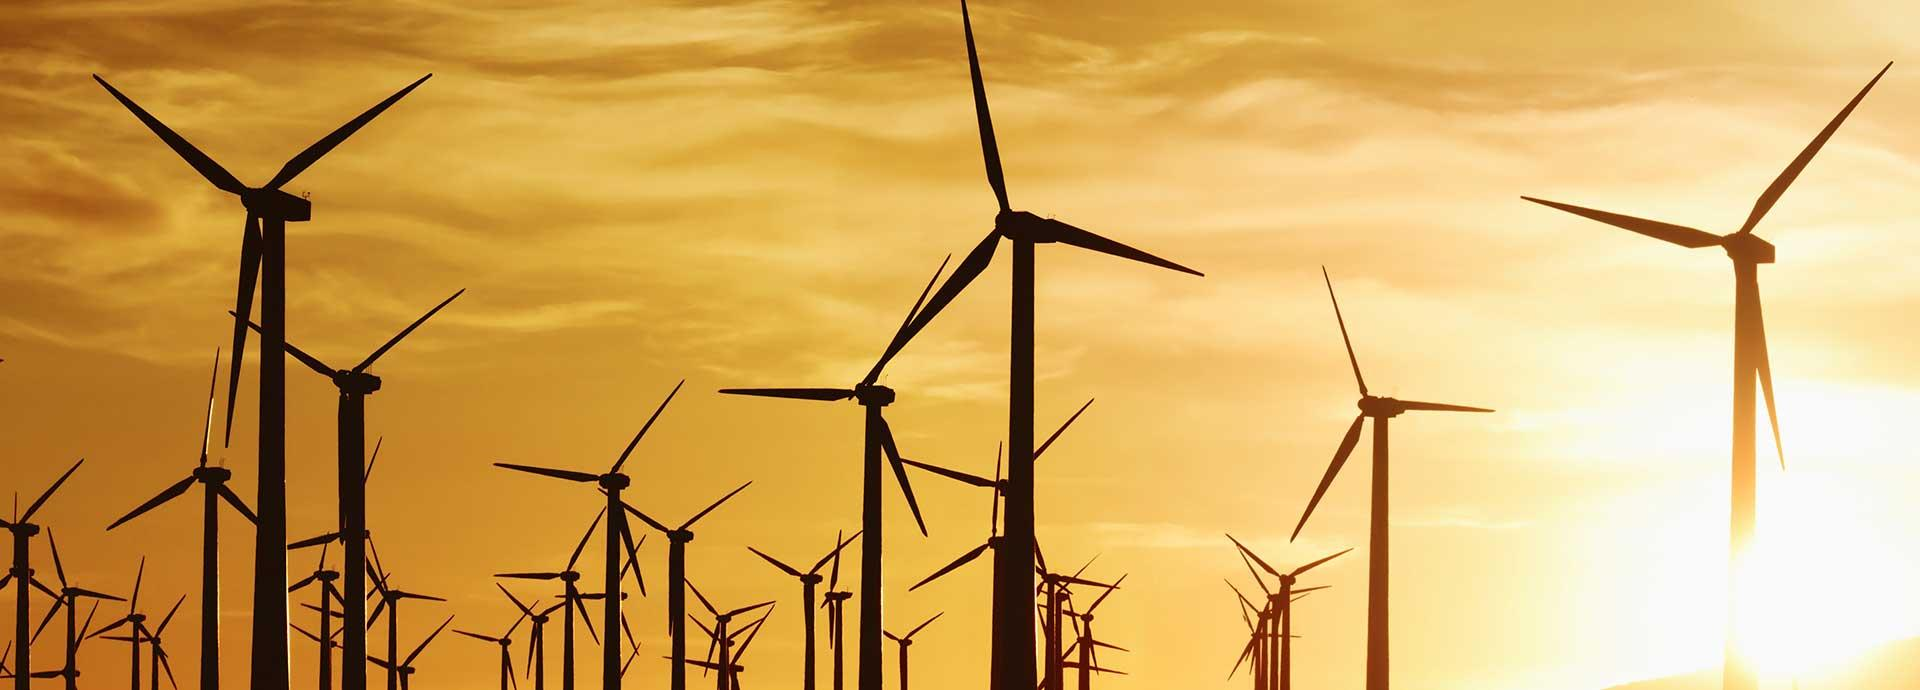 Renewable Energy gathers pace in the U.S.